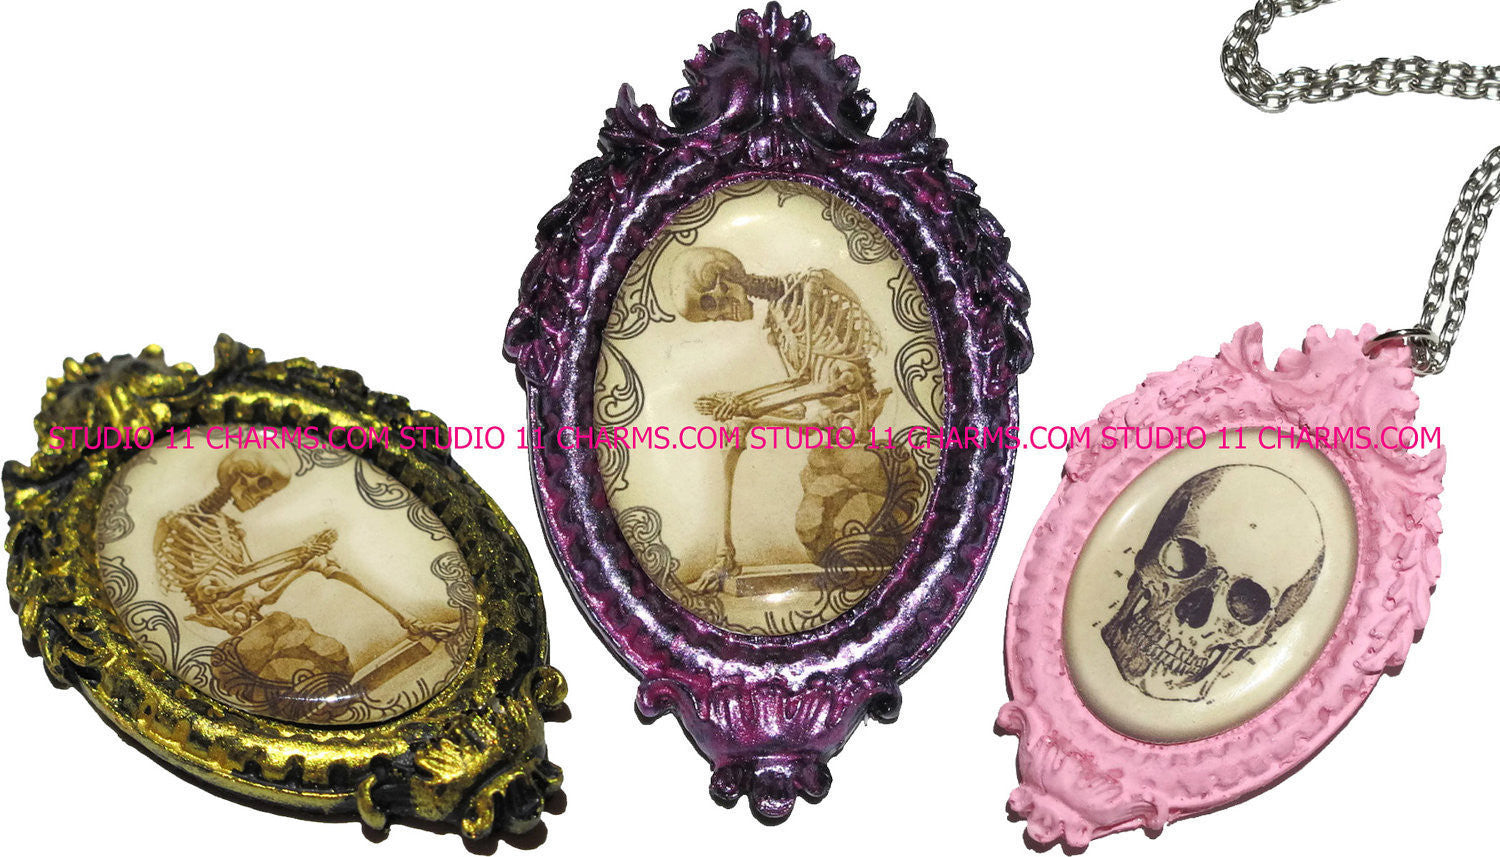 40x30, 18x25, 13X18 Resin Cameo LOW DOME Cabochon. Alice in Wonderland 37b Ouija Vintage Style